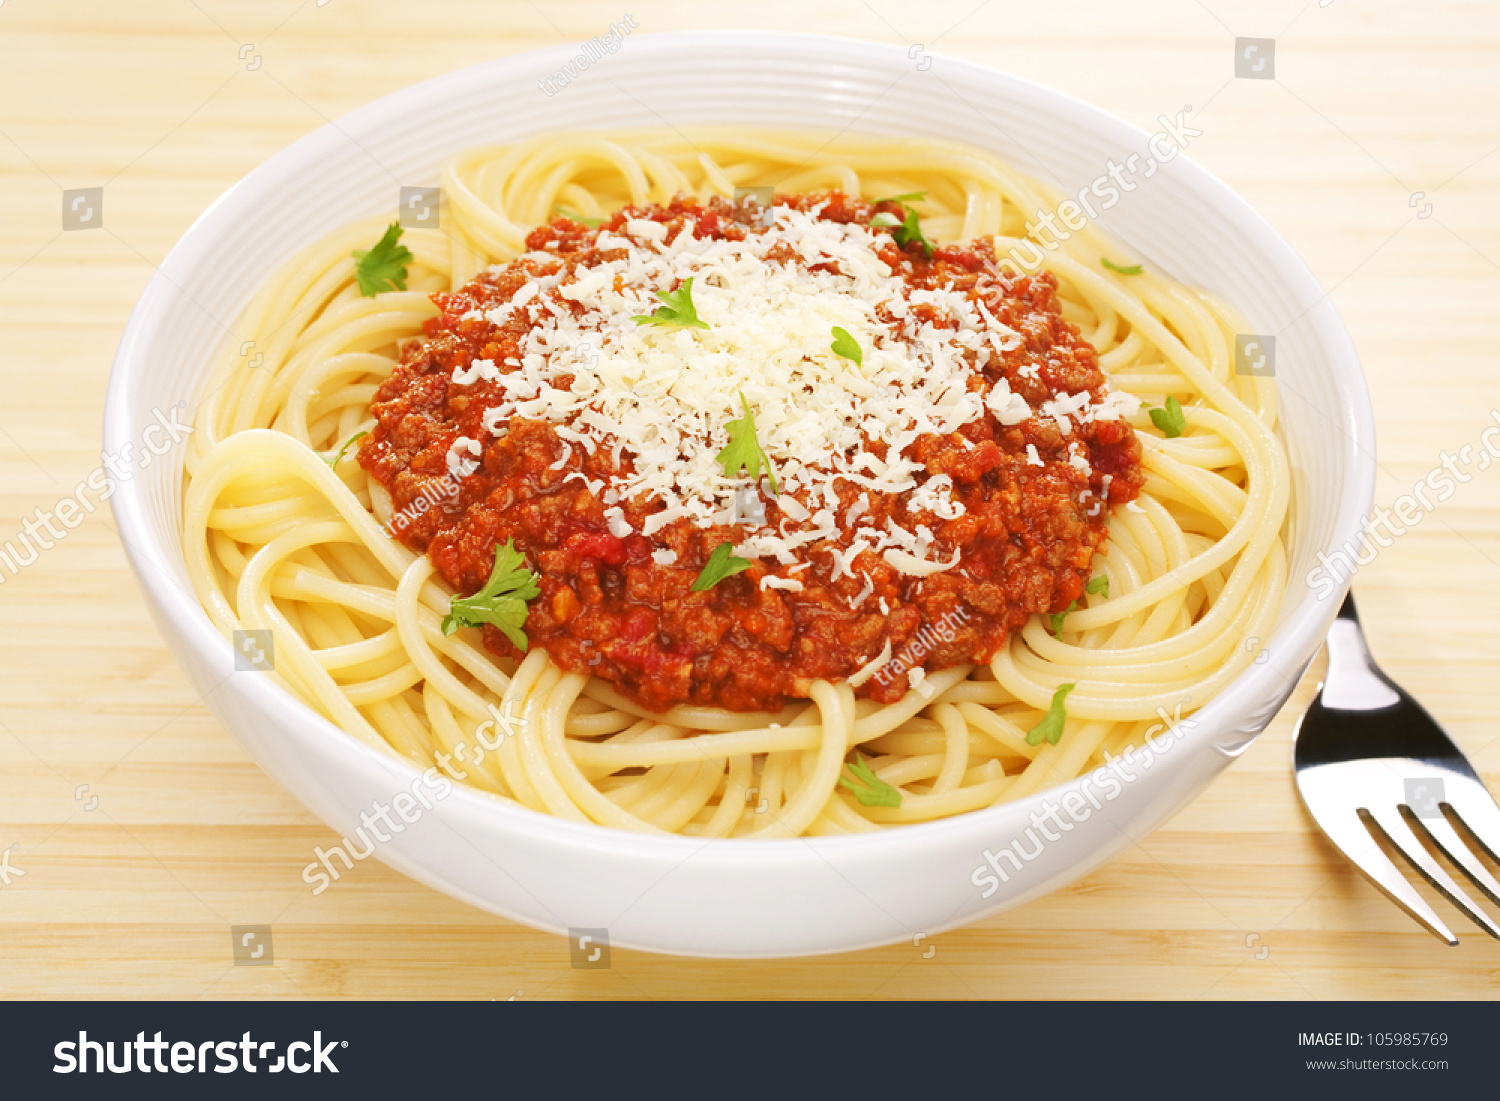 traditional italian favourite pasta dish spaghetti stock photo 105985769 shutterstock. Black Bedroom Furniture Sets. Home Design Ideas